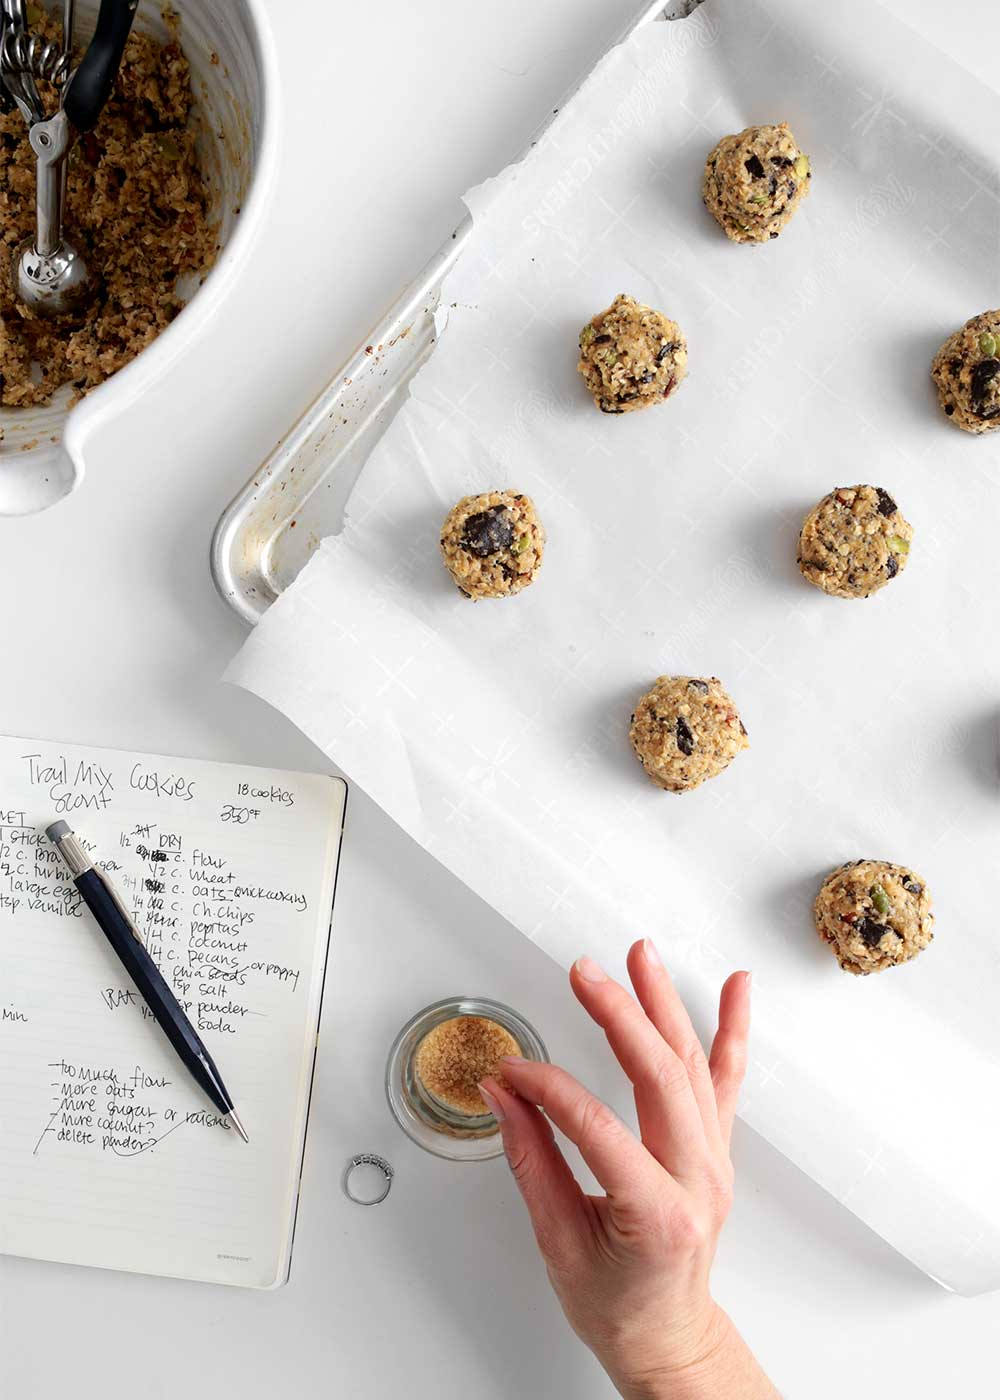 Oatmeal Cookie Dough recipe from The Faux Martha